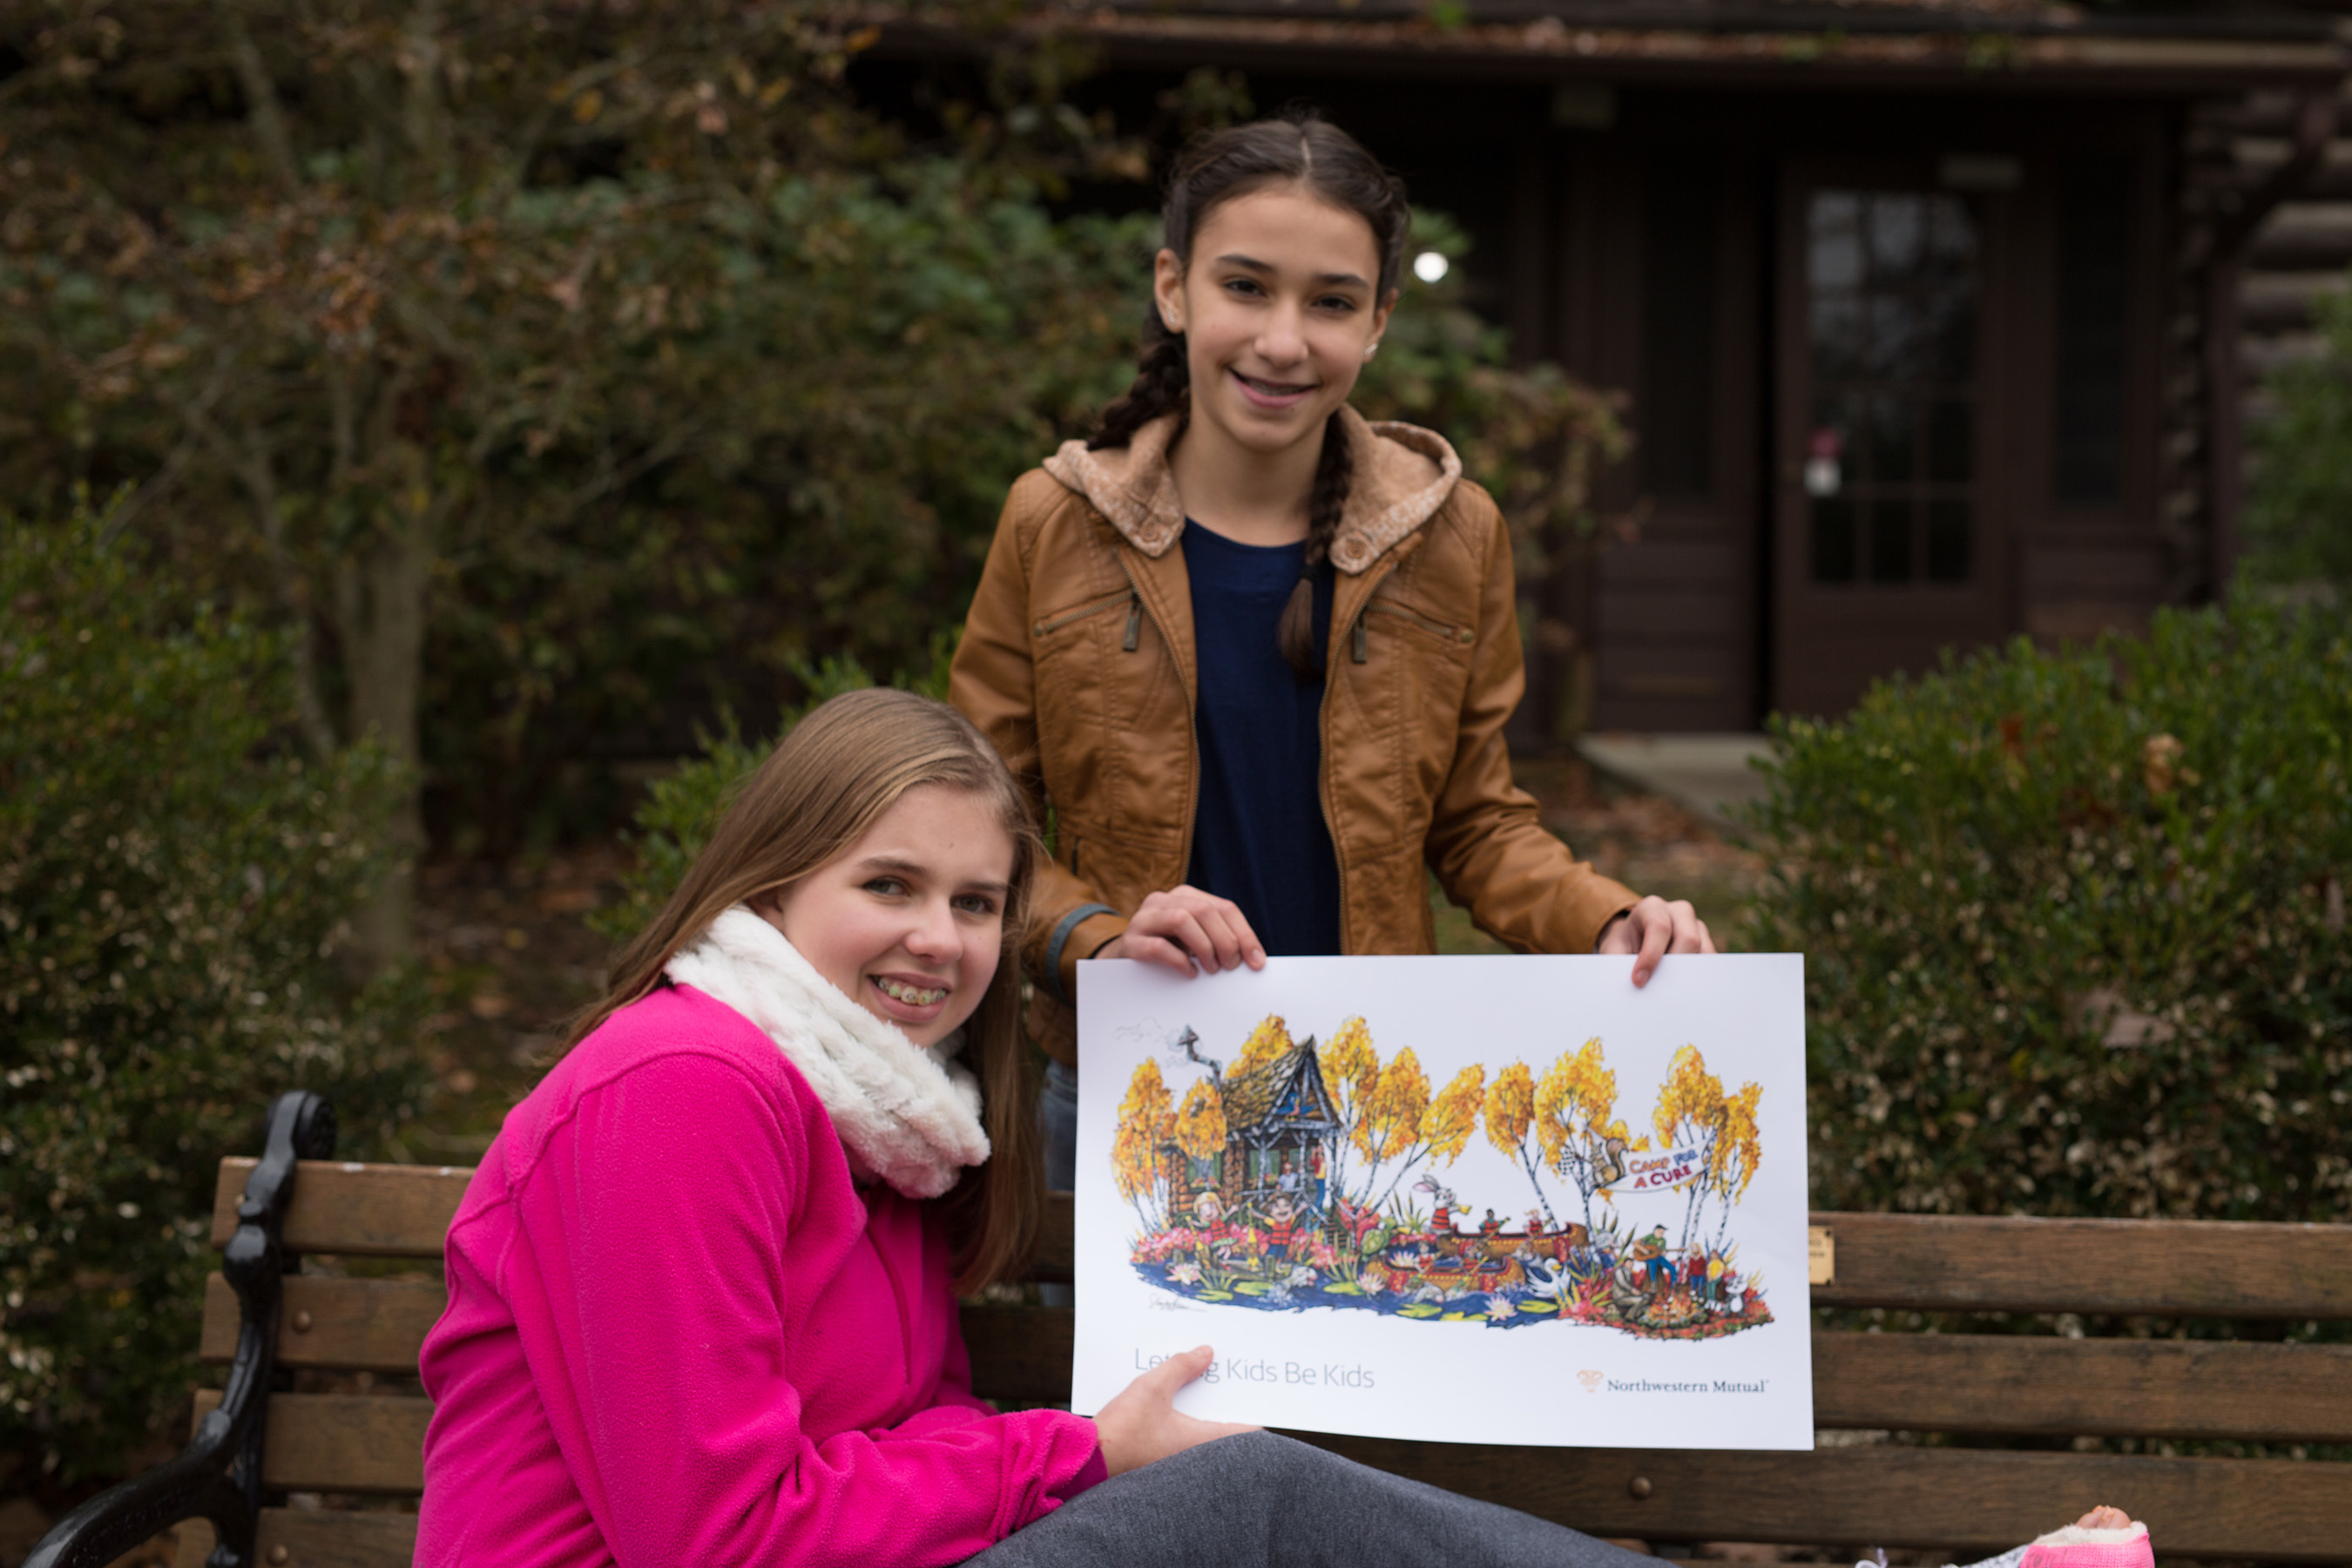 Mary Perkins, 14, is a childhood brain tumor survivor. Mary and Nina Freidline, 12, her cousin and best friend, will ride Northwestern Mutual's float in the 2018 Rose Parade®.